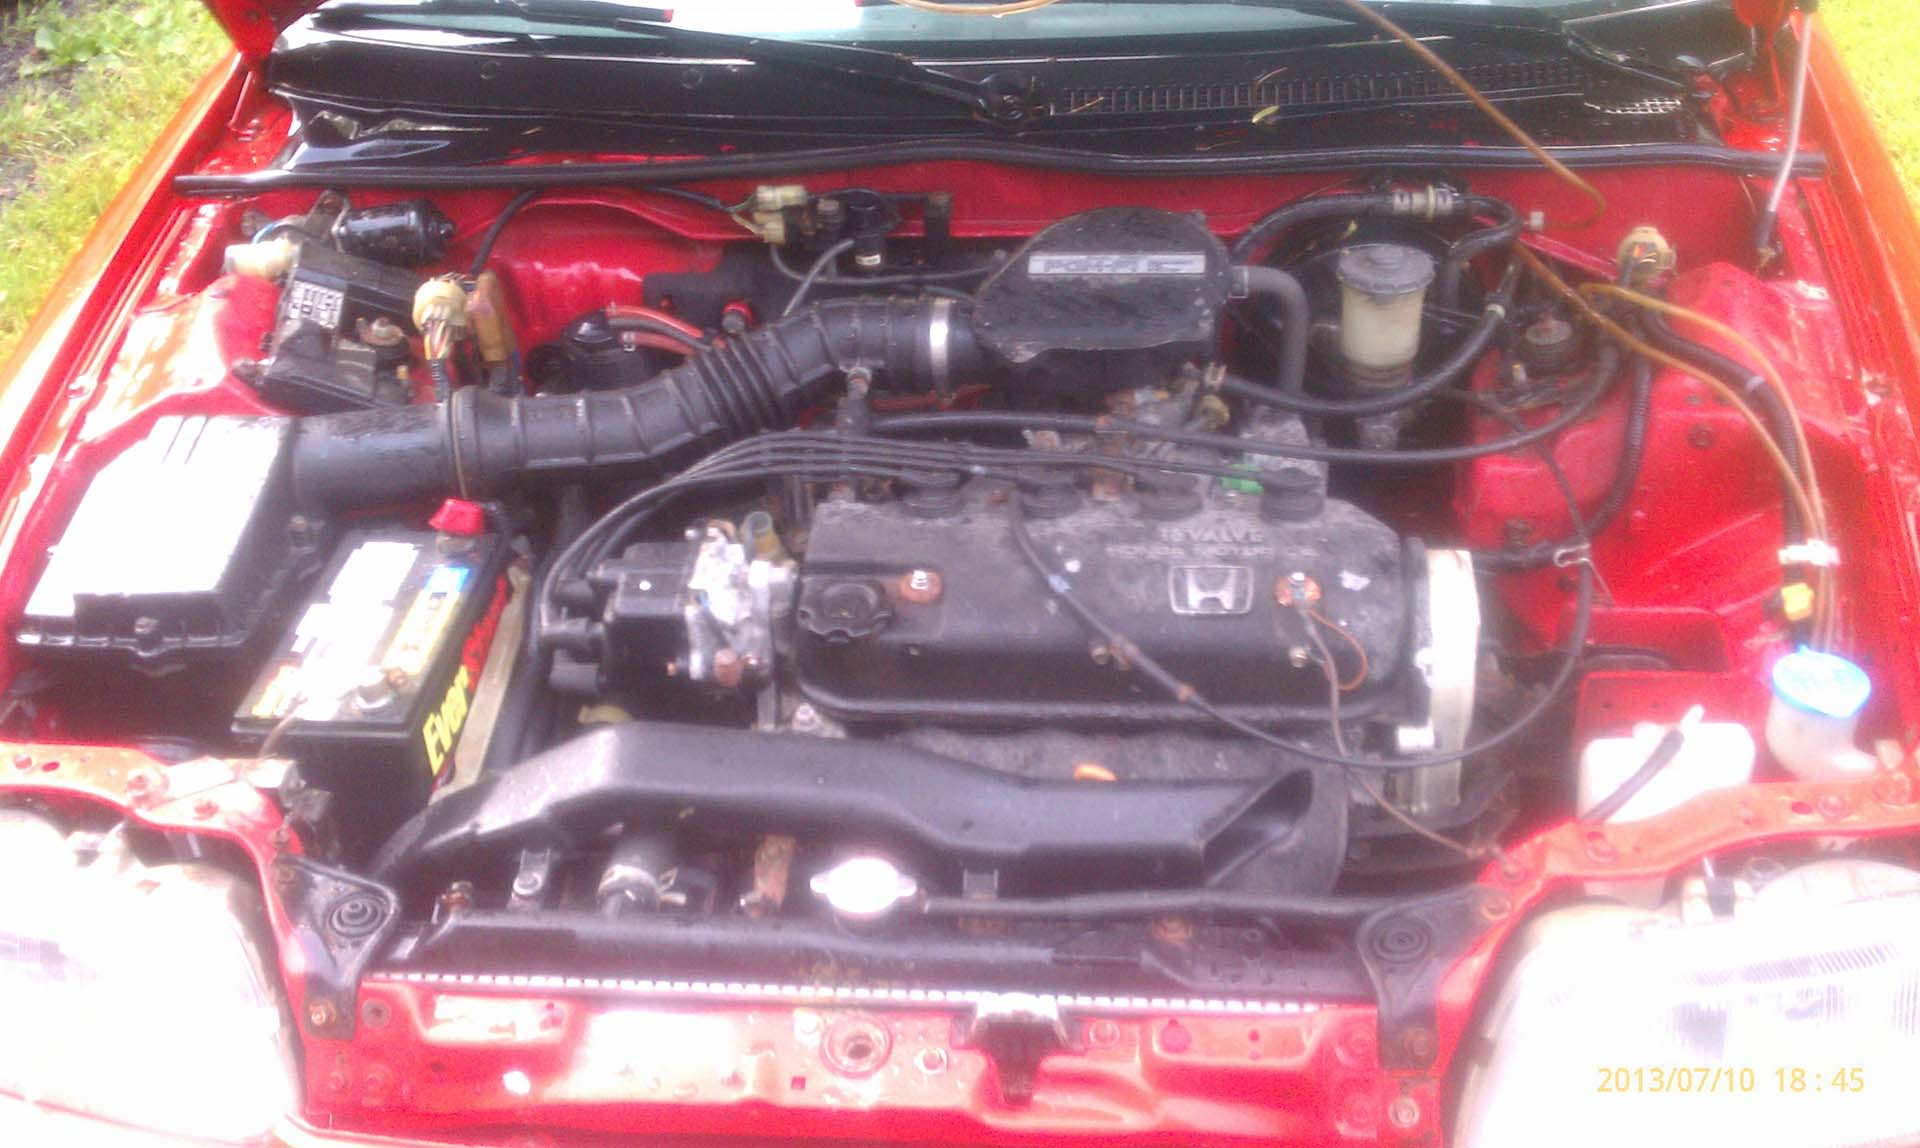 Potential CRX #1 - Engine Bay